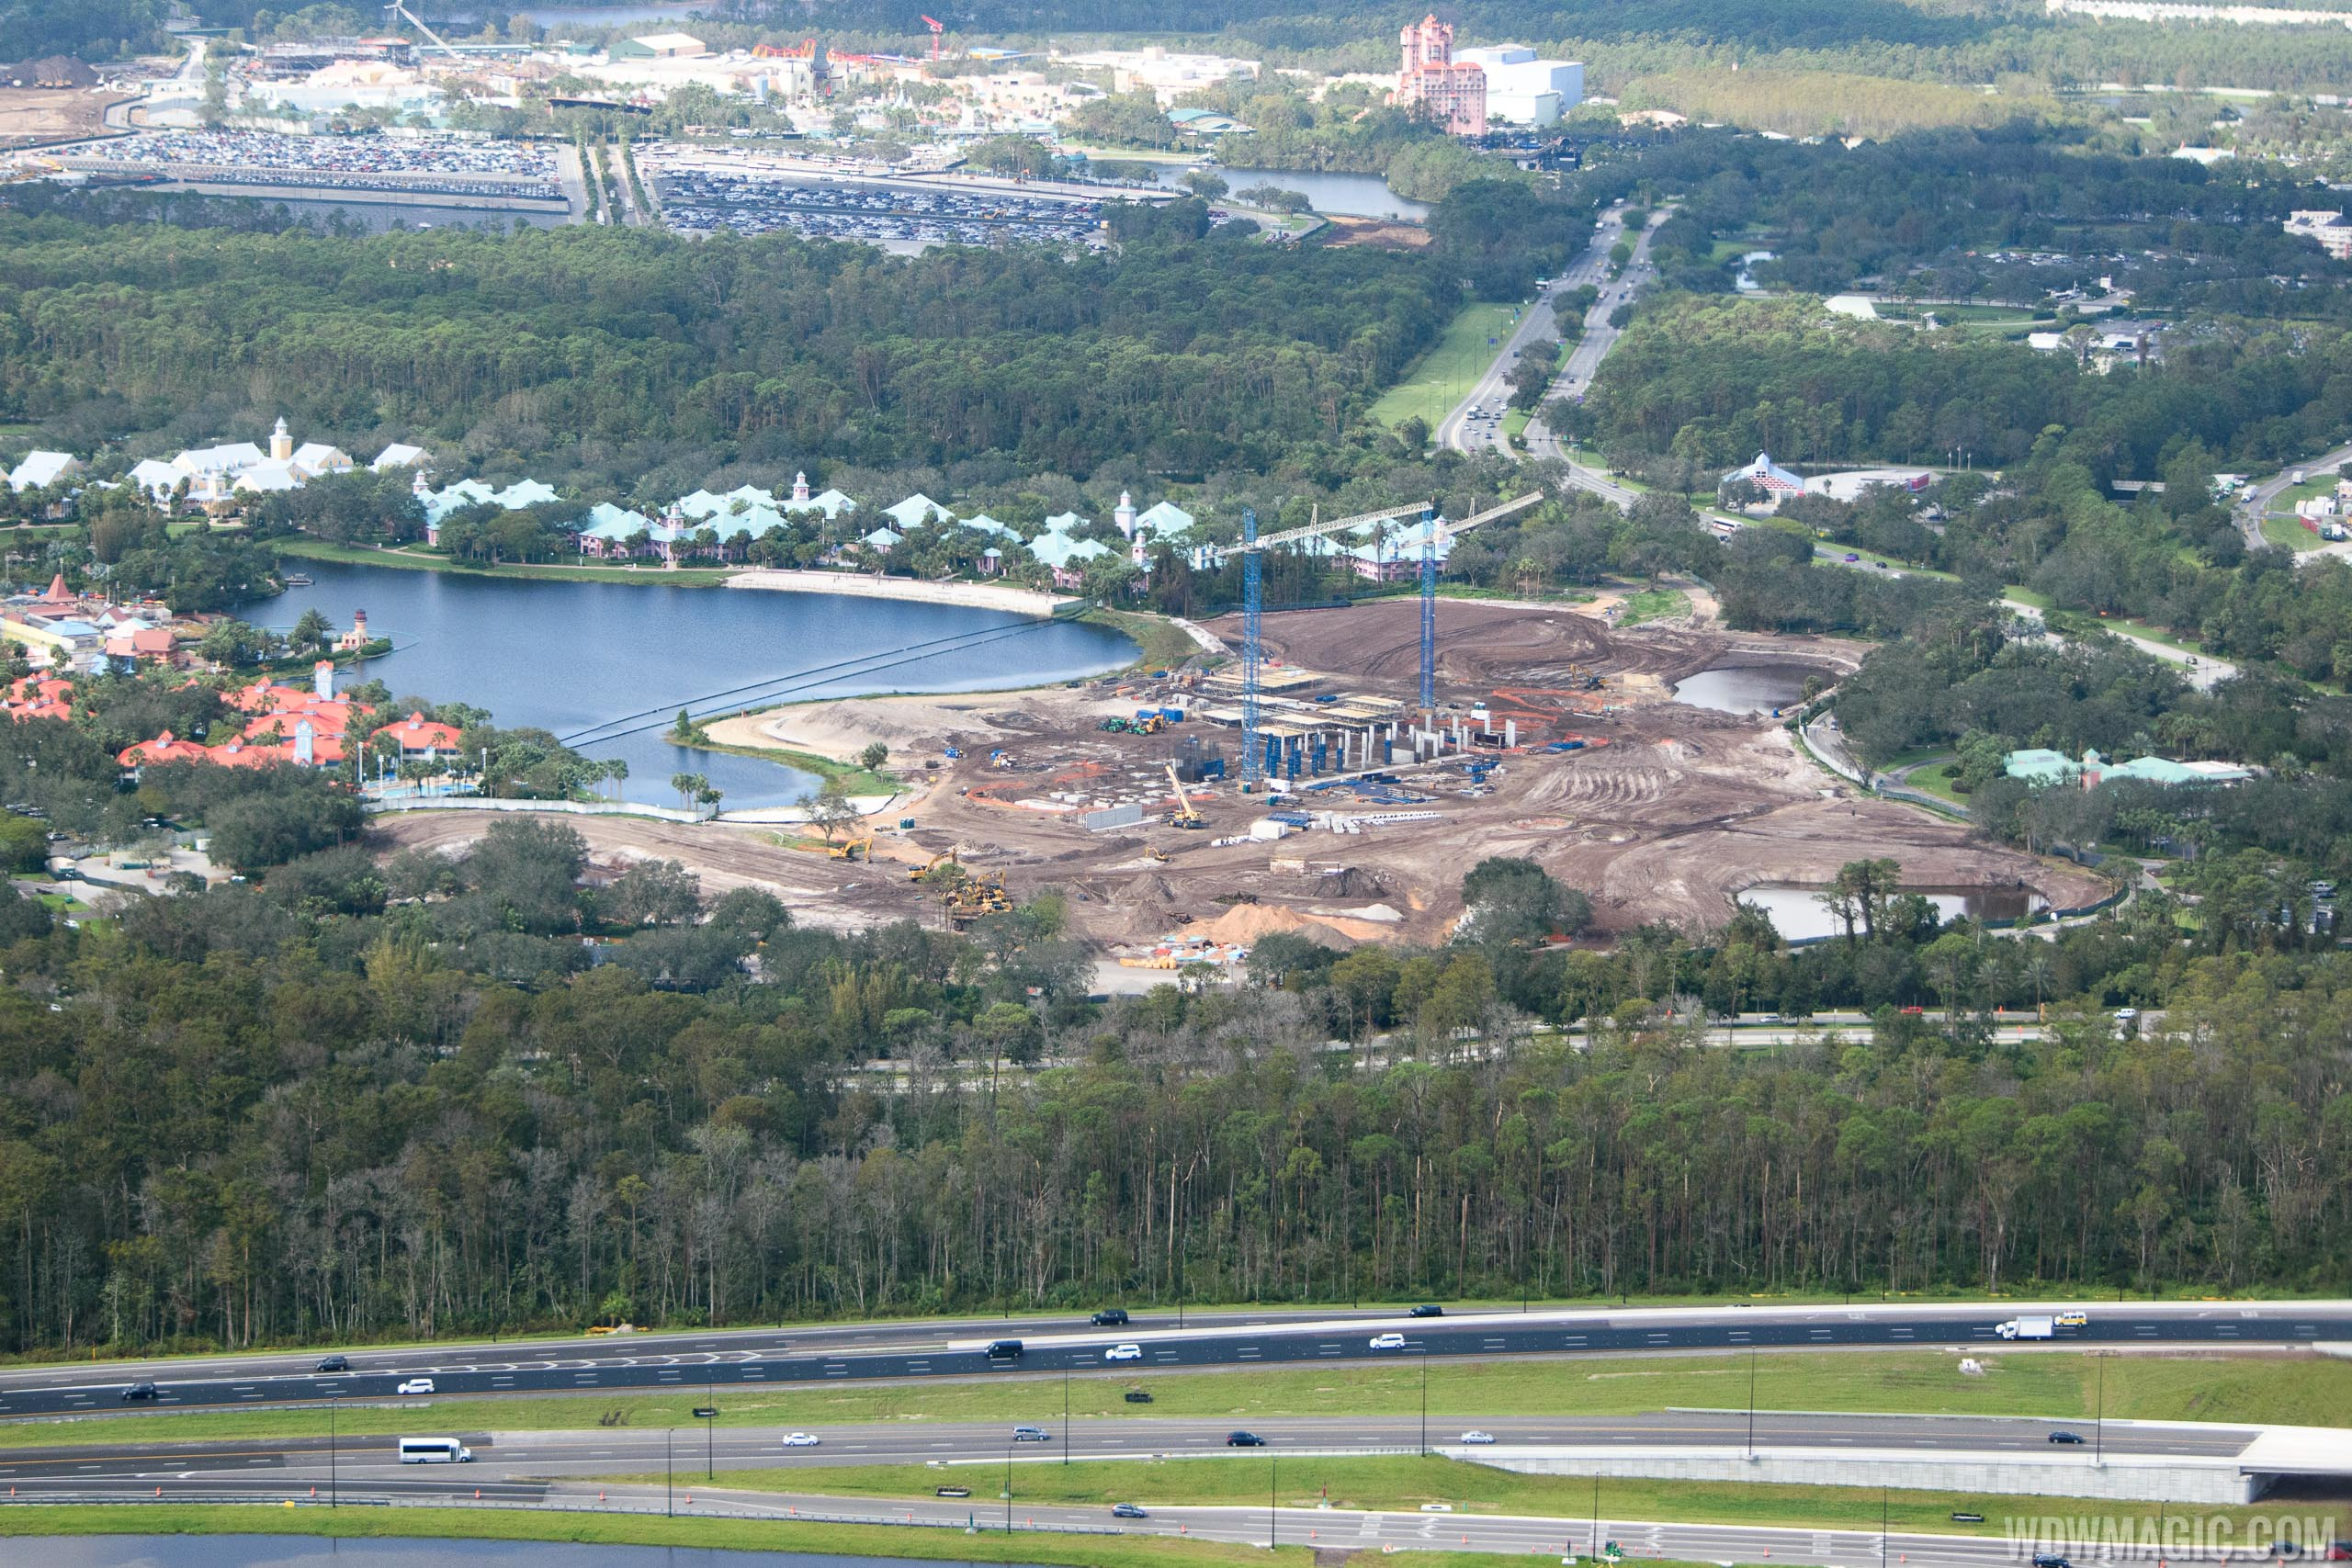 Disney Riviera construction from the air